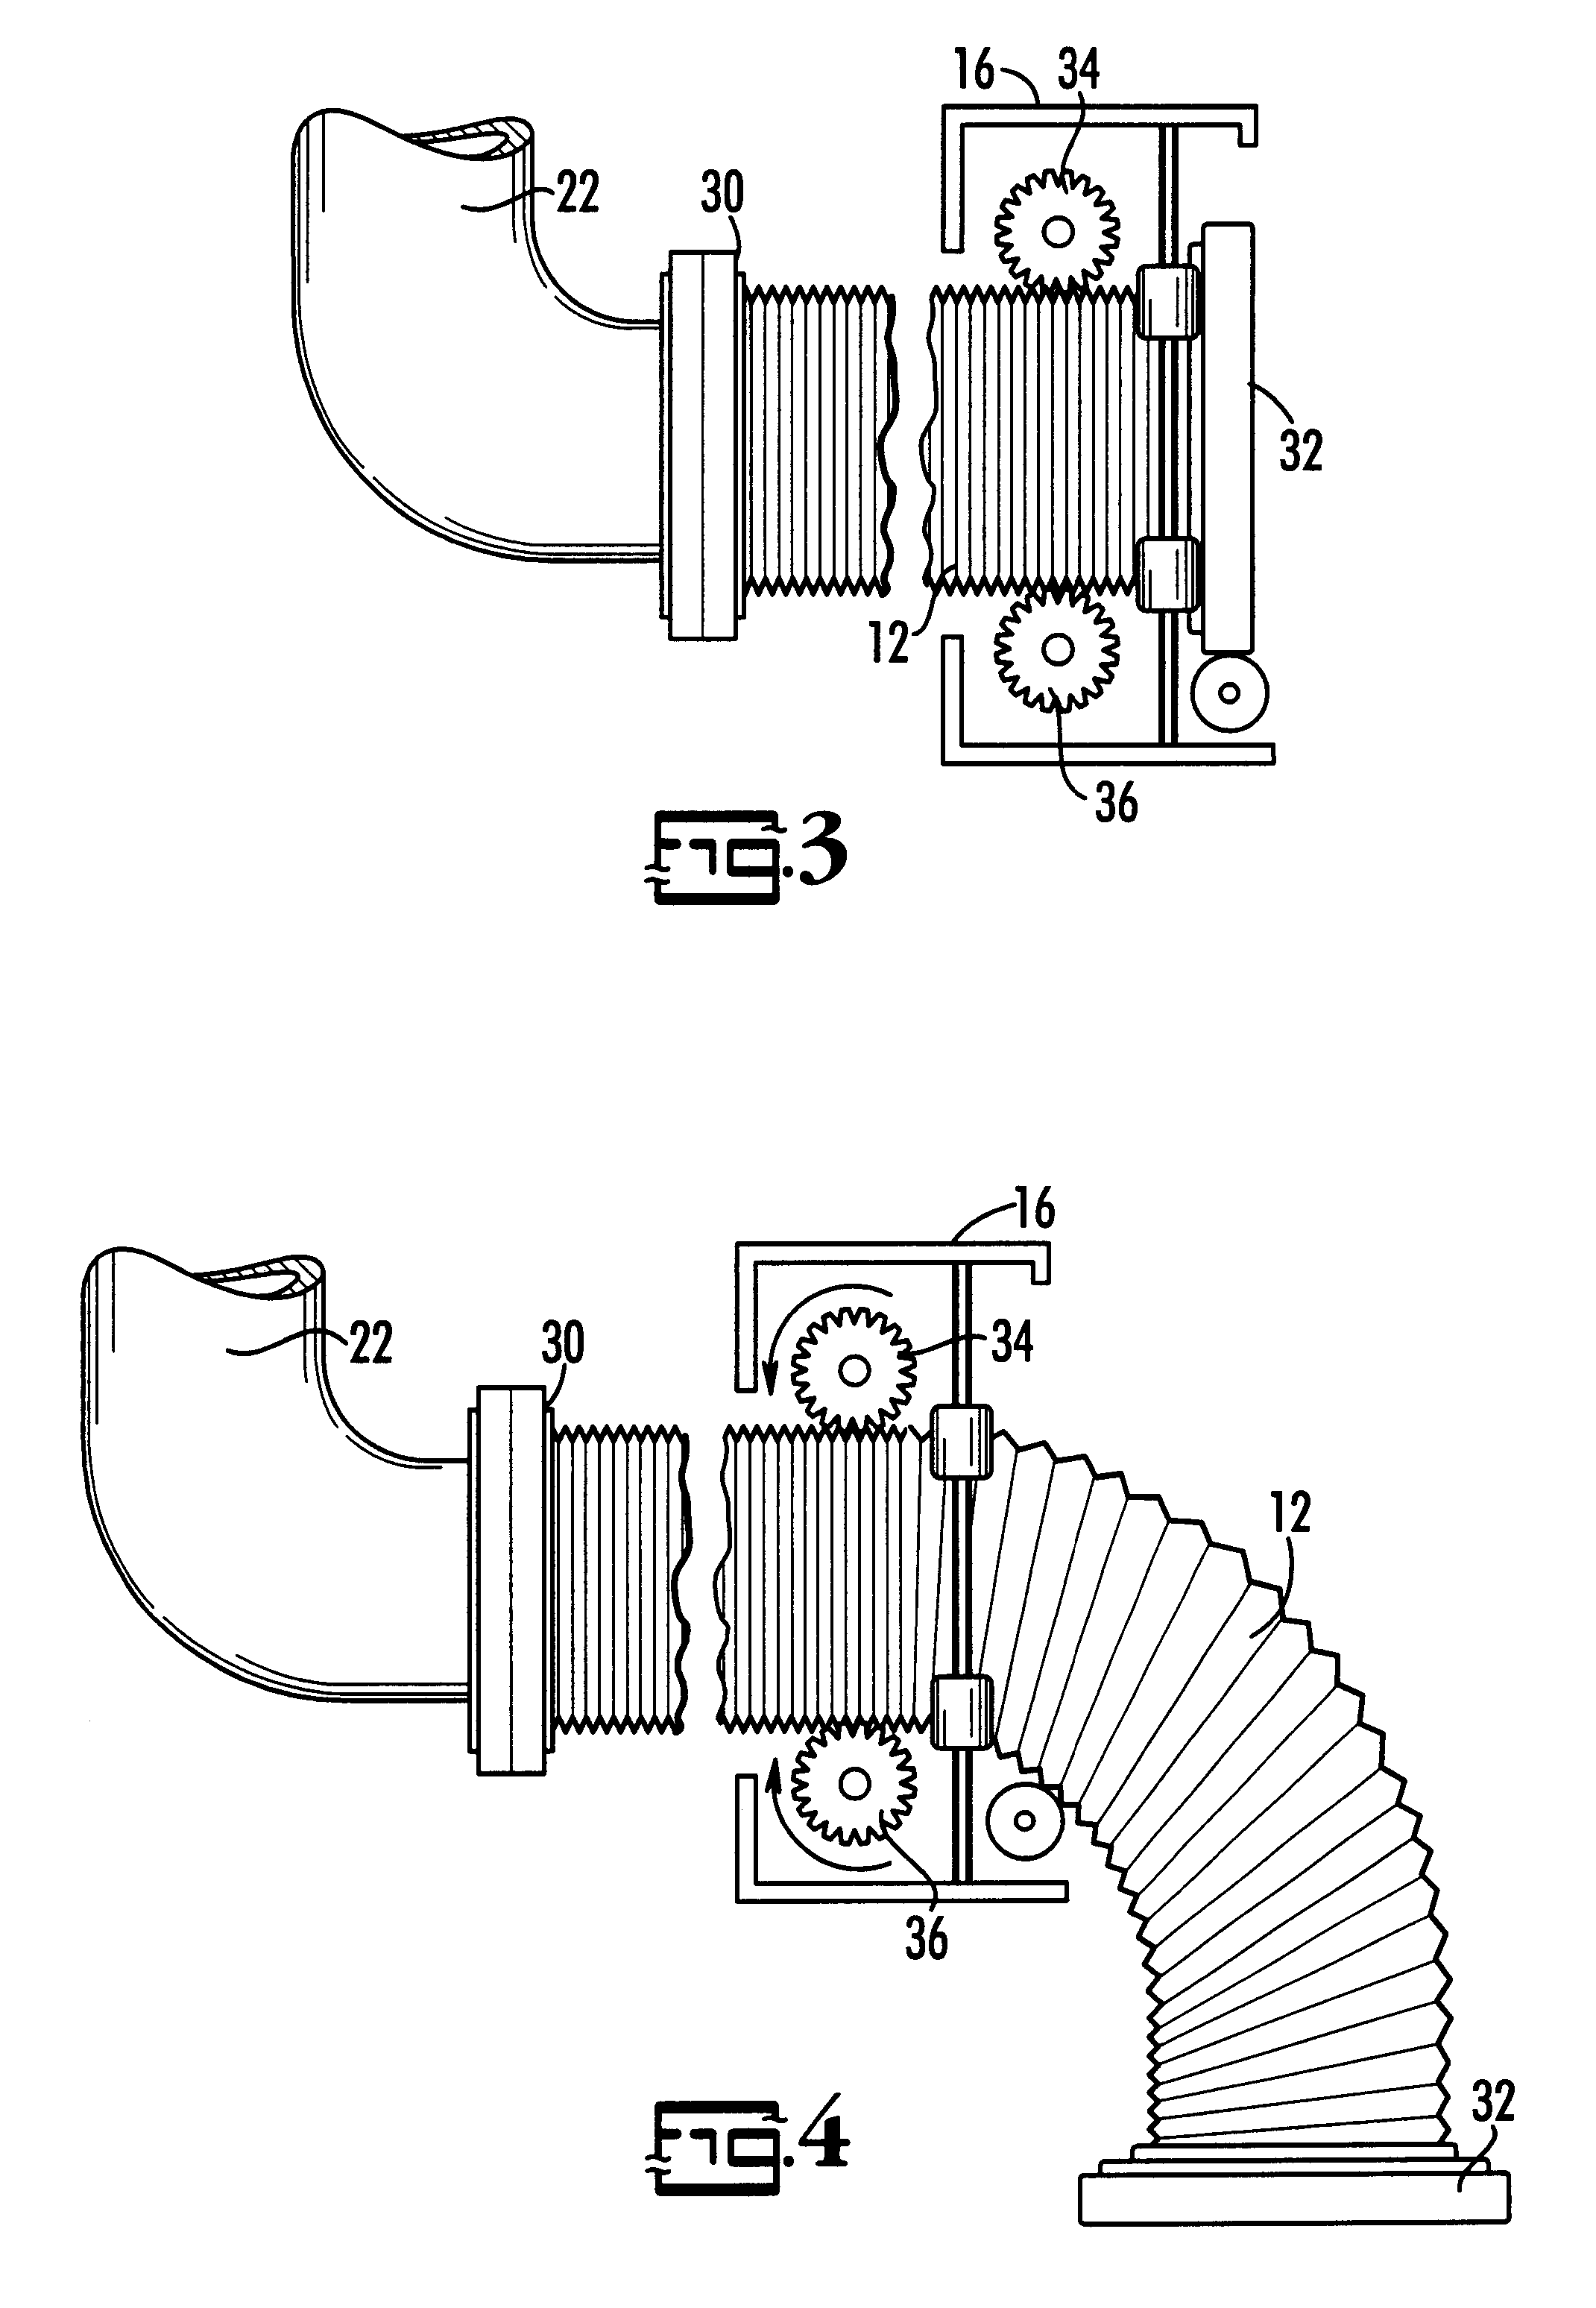 Patent Us6516836 Motorized Waste Hose For Recreational Vehicle Rv Blackwater Diagrams Moreover Thetford Toilet Parts Diagram Drawing